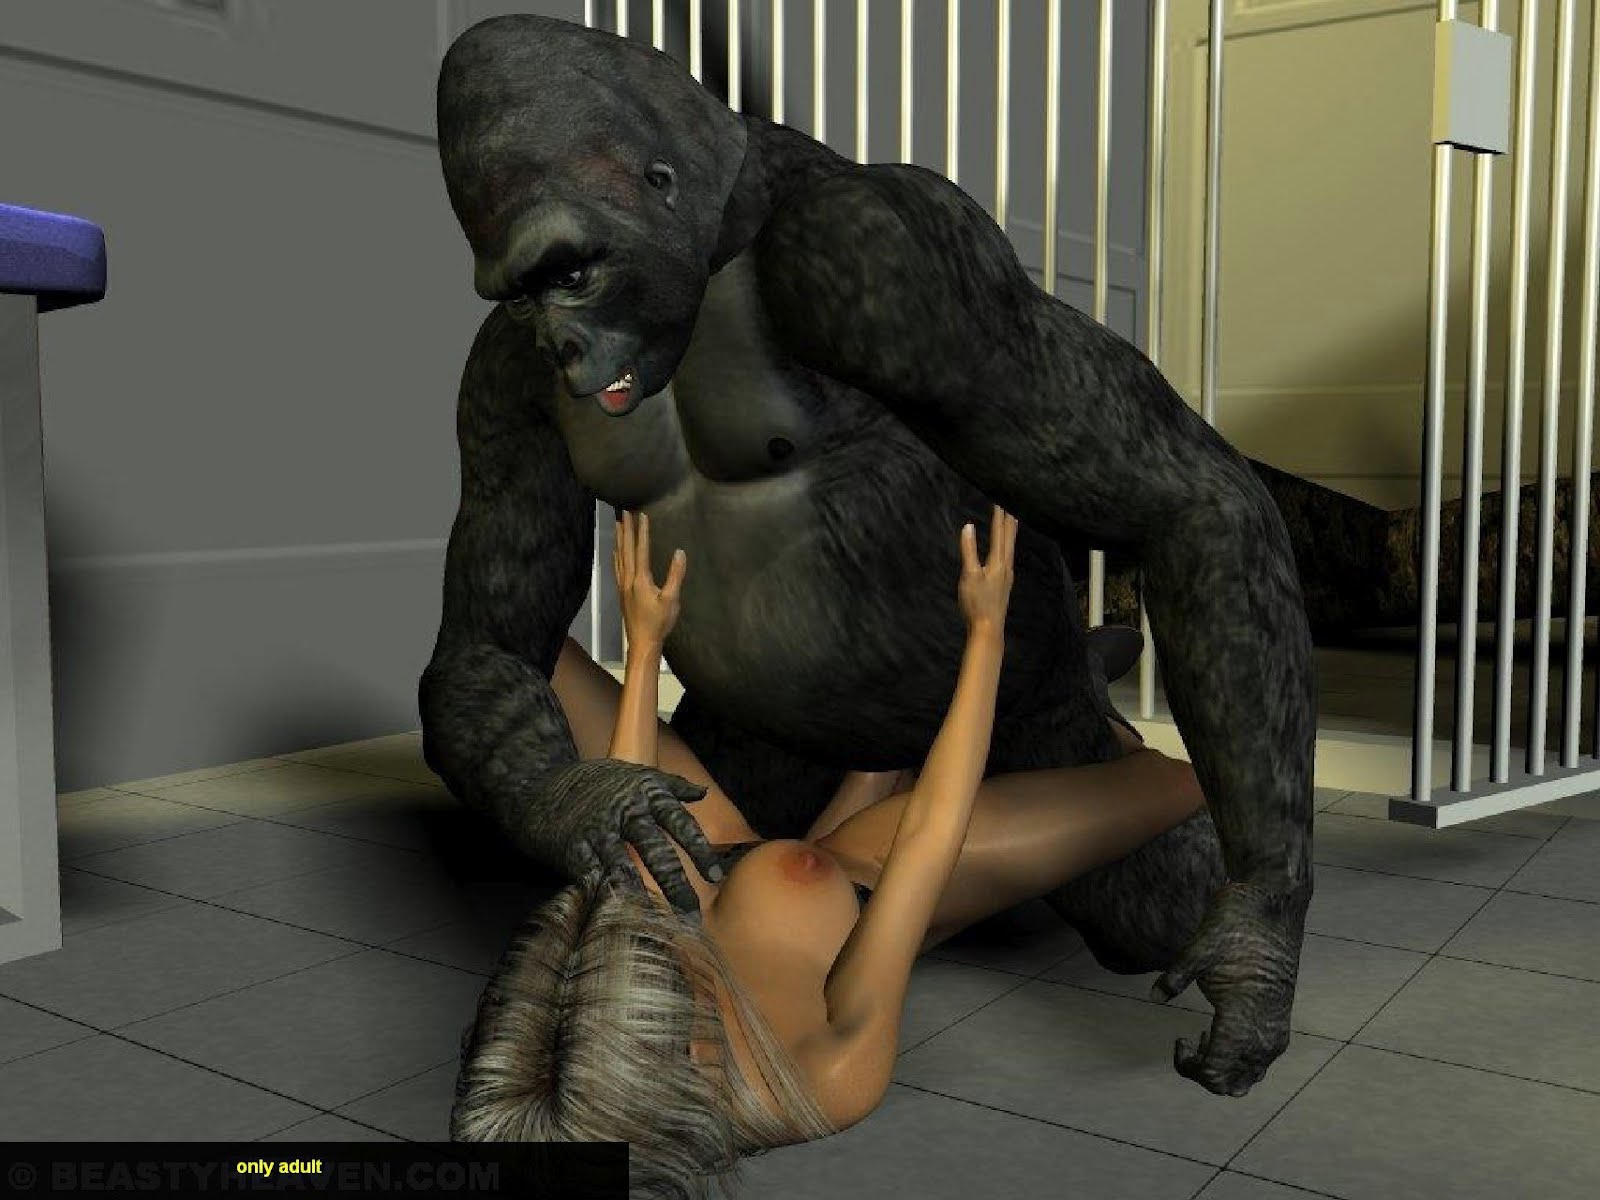 Monkey sex with girl 3d erotic pics